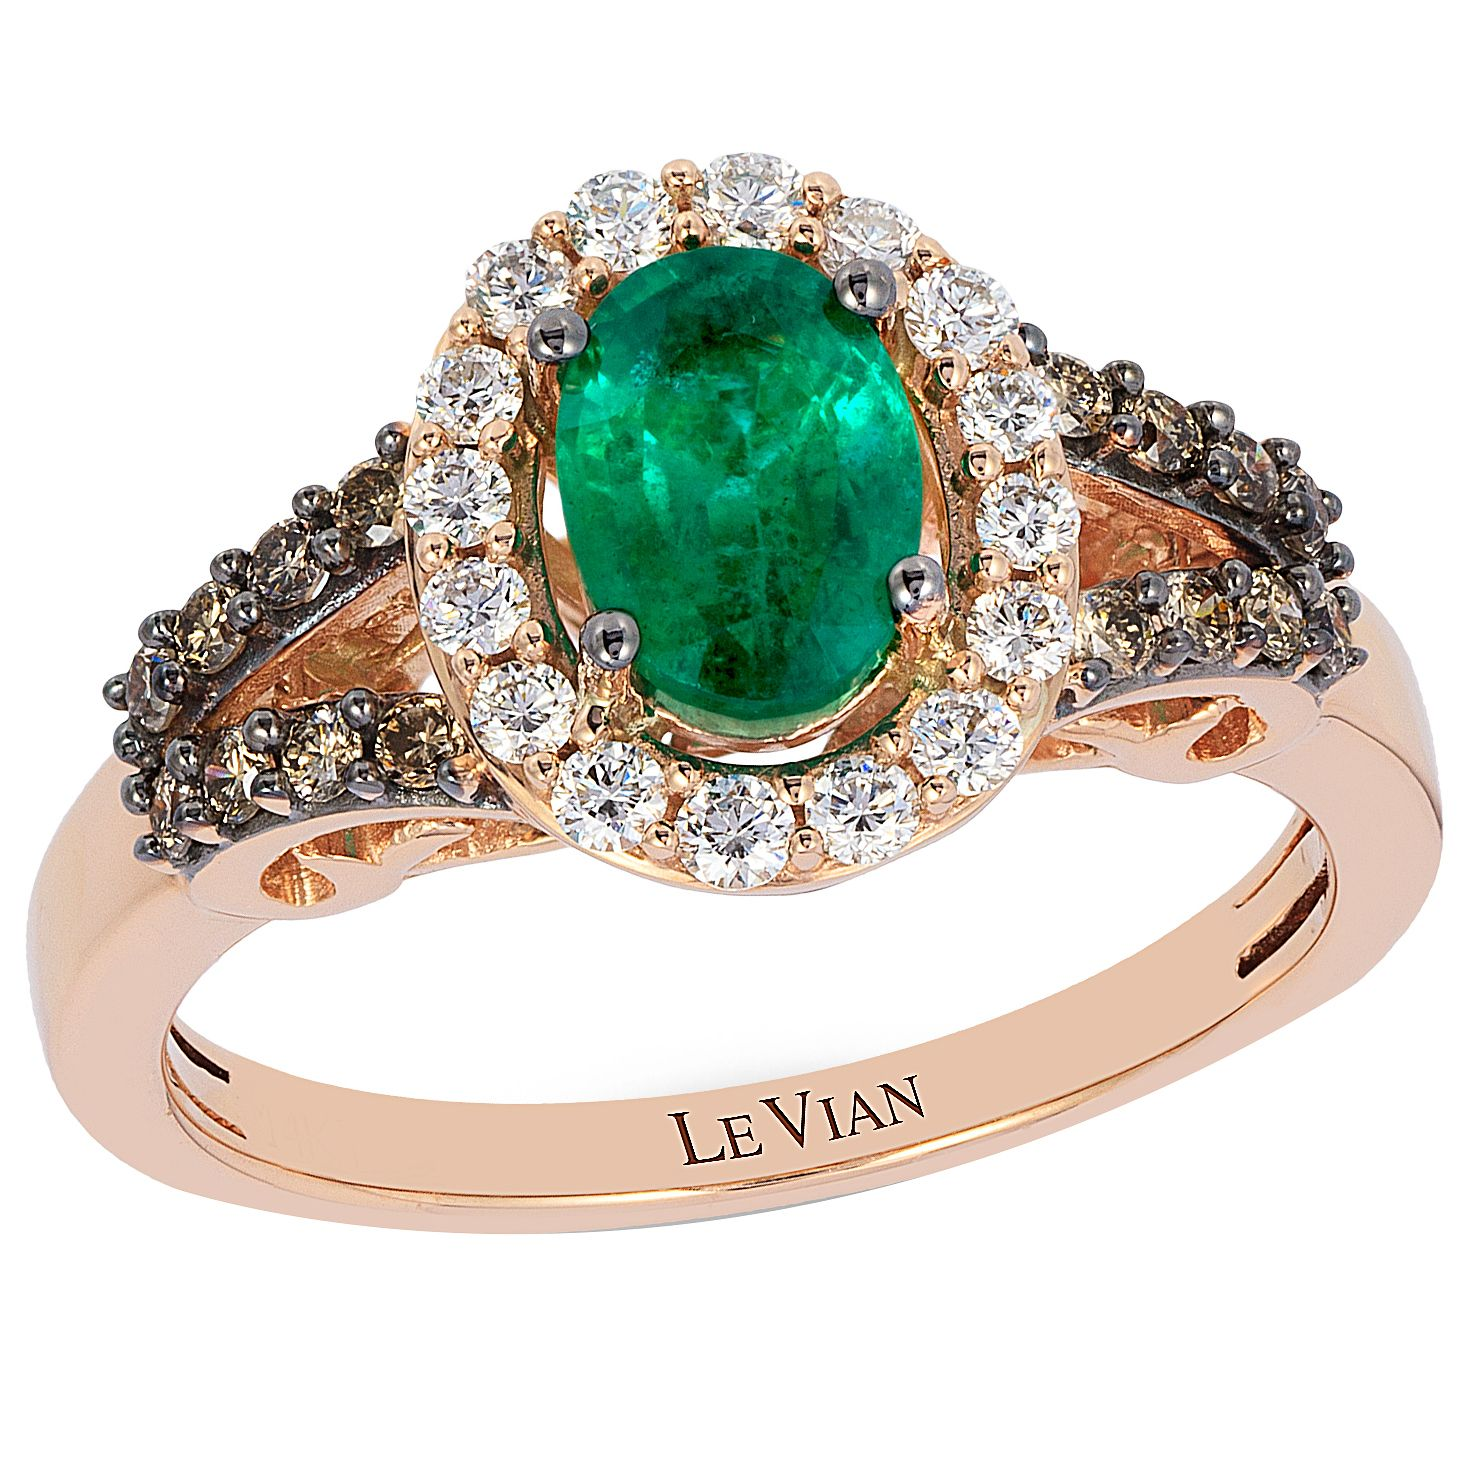 Le Vian 14ct Strawberry Gold Costa Smeralda Emerald Ring - Product number 4684737